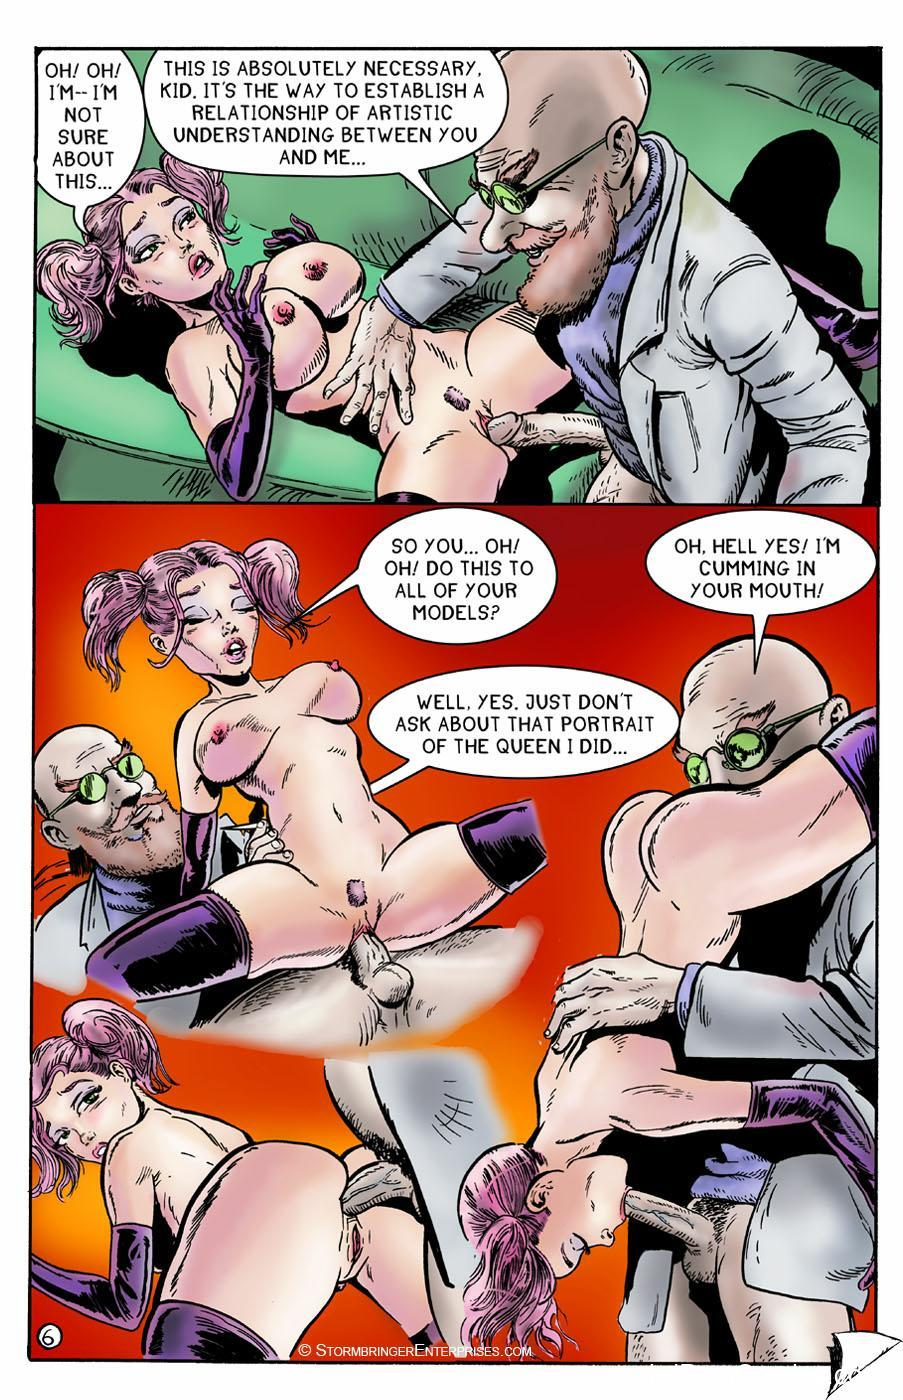 Erotic Adventures of Candice 01-1894 free sex comic